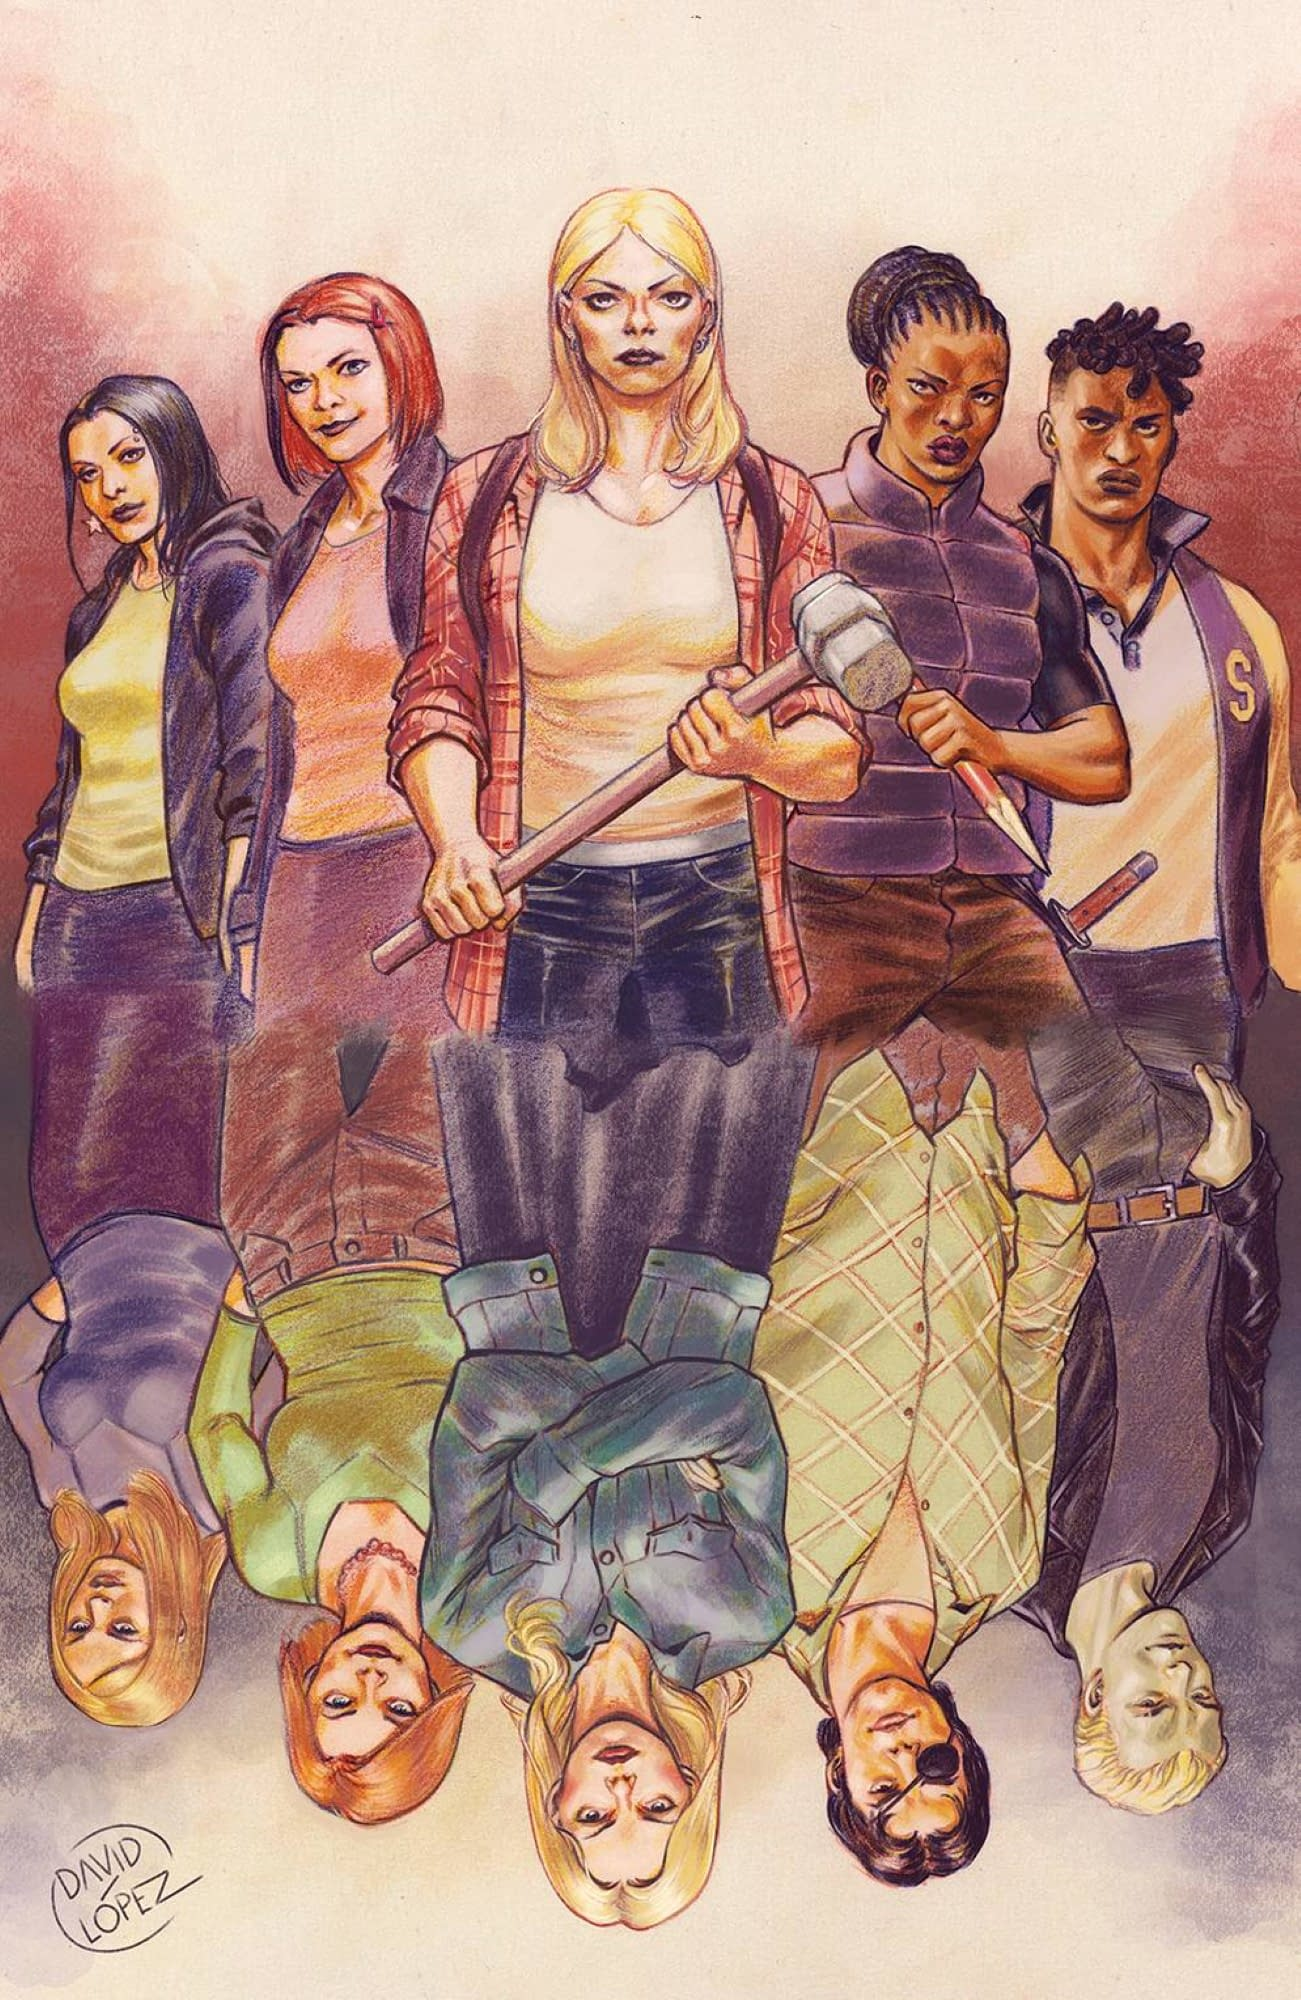 BUFFY THE VAMPIRE SLAYER #24 CVR A LOPEZ